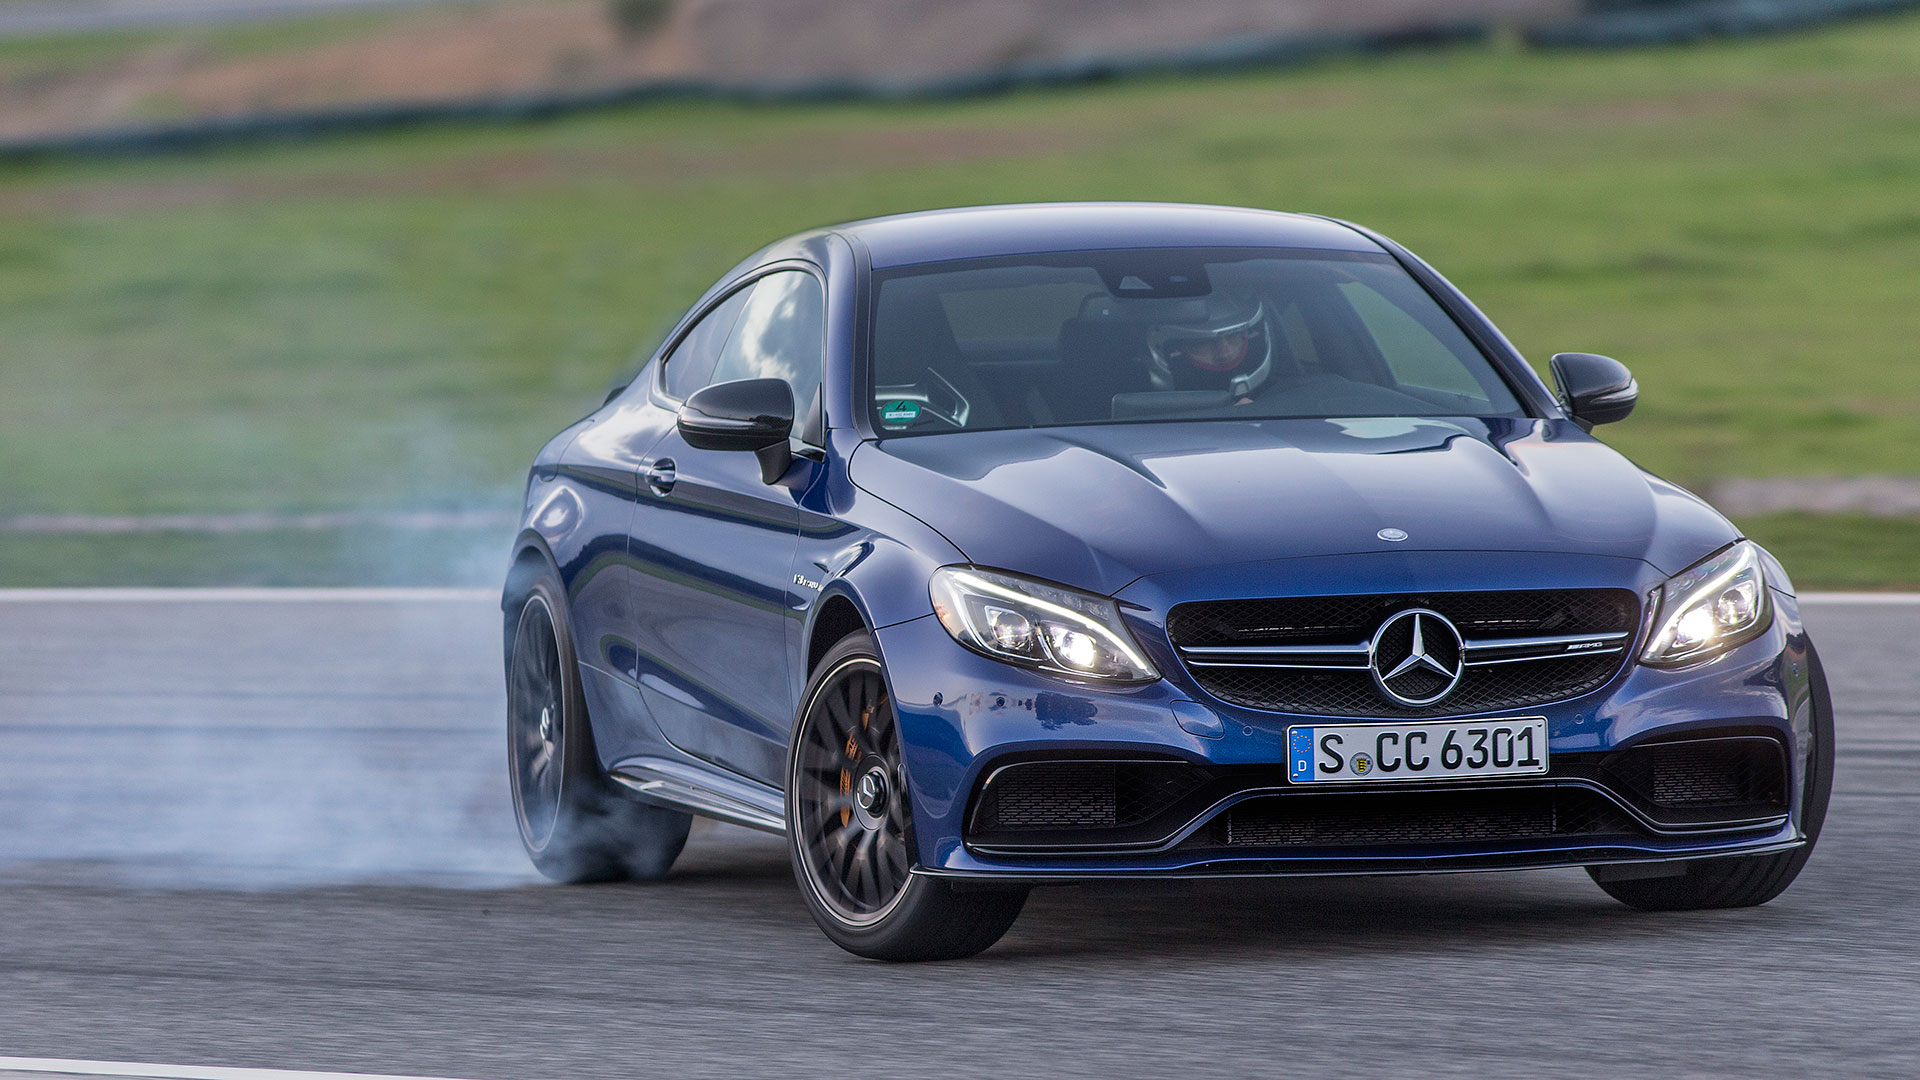 The 2017 Mercedes Amg C63 S Coupe Smacks Down Bmw M4 Cadillac Ats V